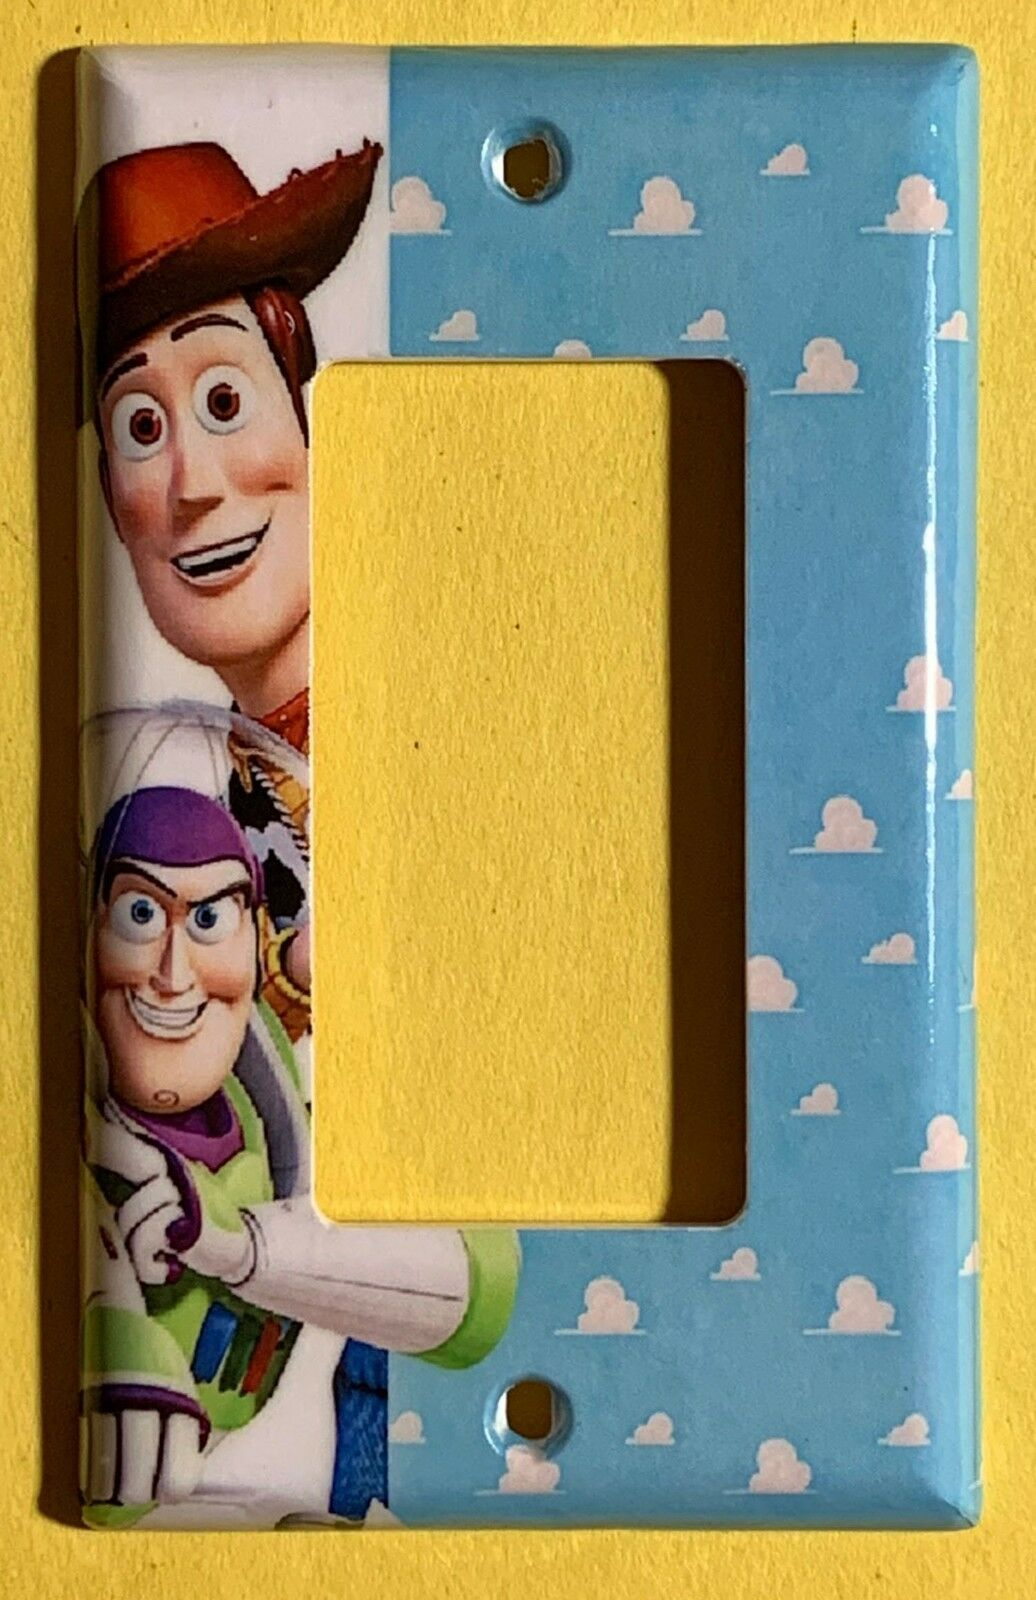 DISNEY/'s TOY STORY ~ BUZZ LIGHTYEAR WALL PLATE ~Resin Outlet Cover ~ BRAND NEW!